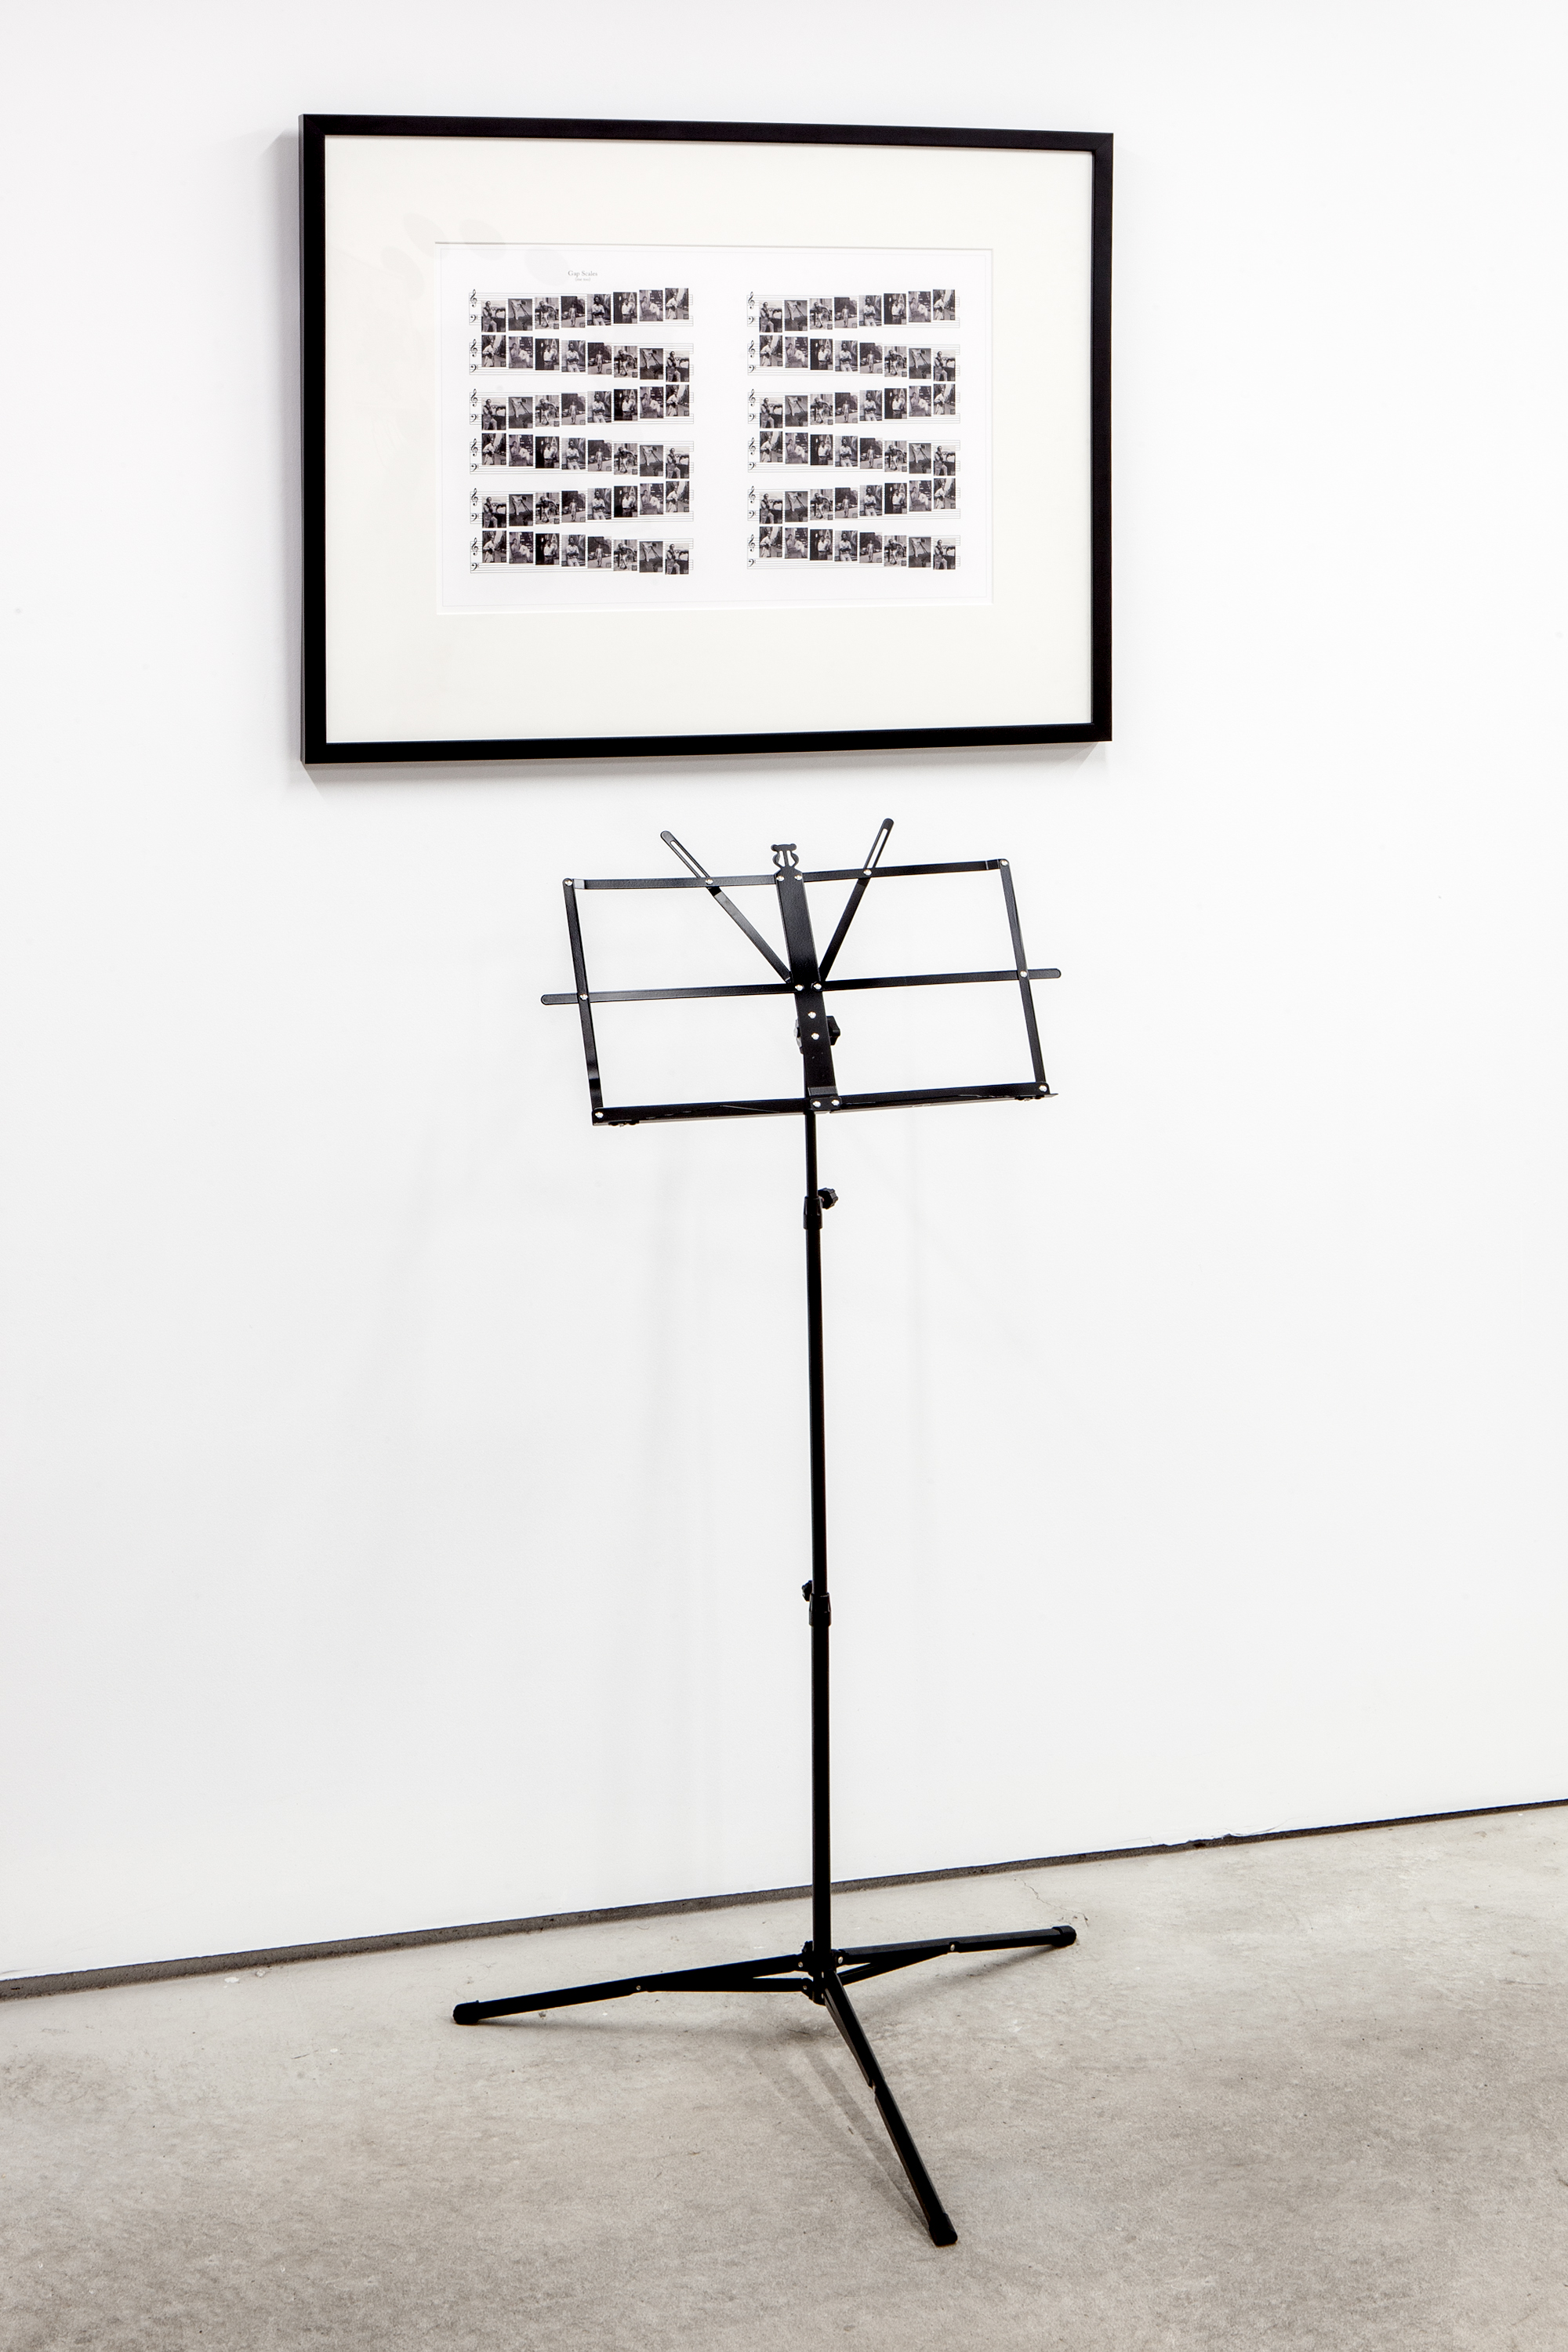 Barbara Bloom (b. Los Angeles, California, 1951),  Song: Gap Scales (me too) , 2008. Archival digital print and music stand. Framed Dimensions: 24 x 30 inches (variable for stand placement). Edition AP 1 of 2. Courtesy David Lewis Gallery, New York. Photo:Daniel Hojnacki.